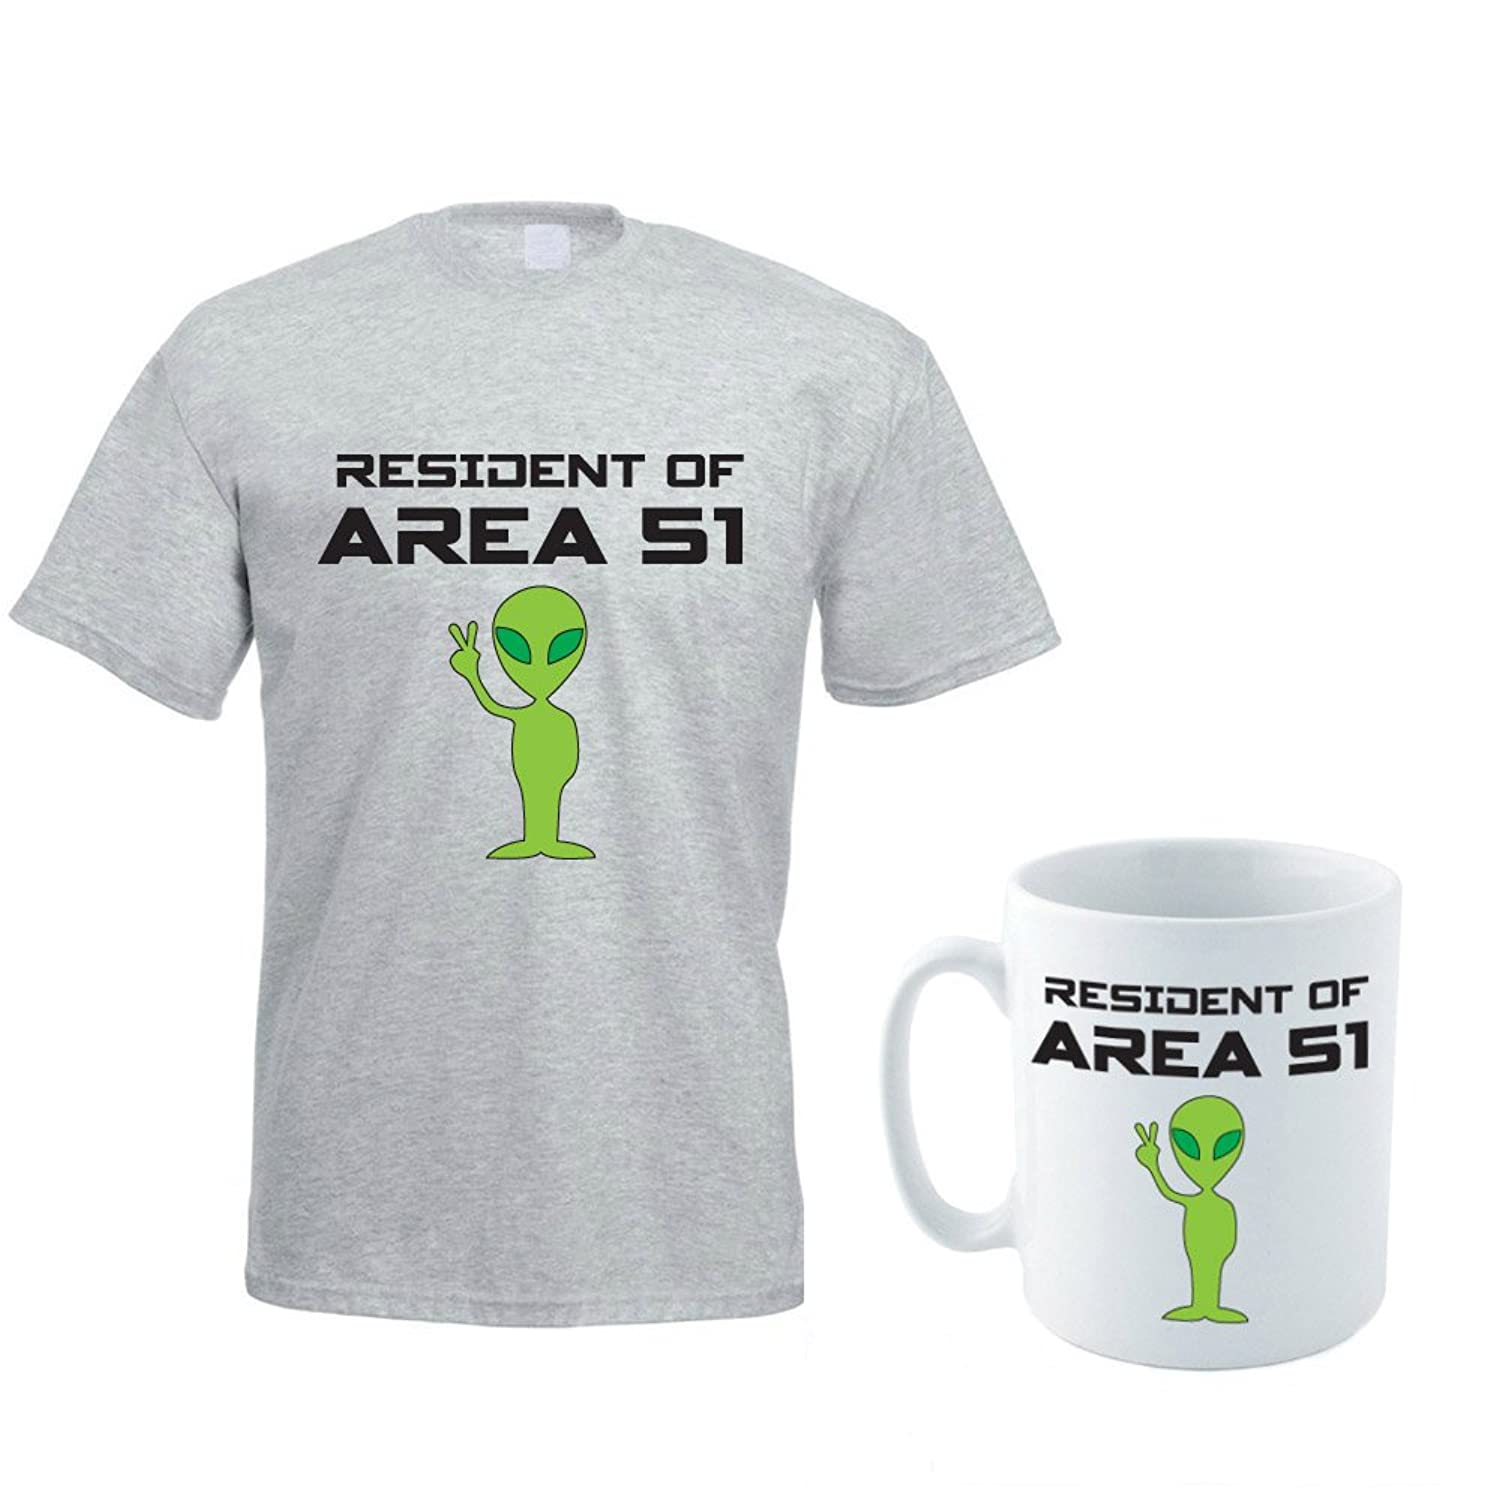 ALIEN THEMED - Science Fiction / Sci Fi / Gift / Novelty Men's T-Shirt & Ceramic Mug